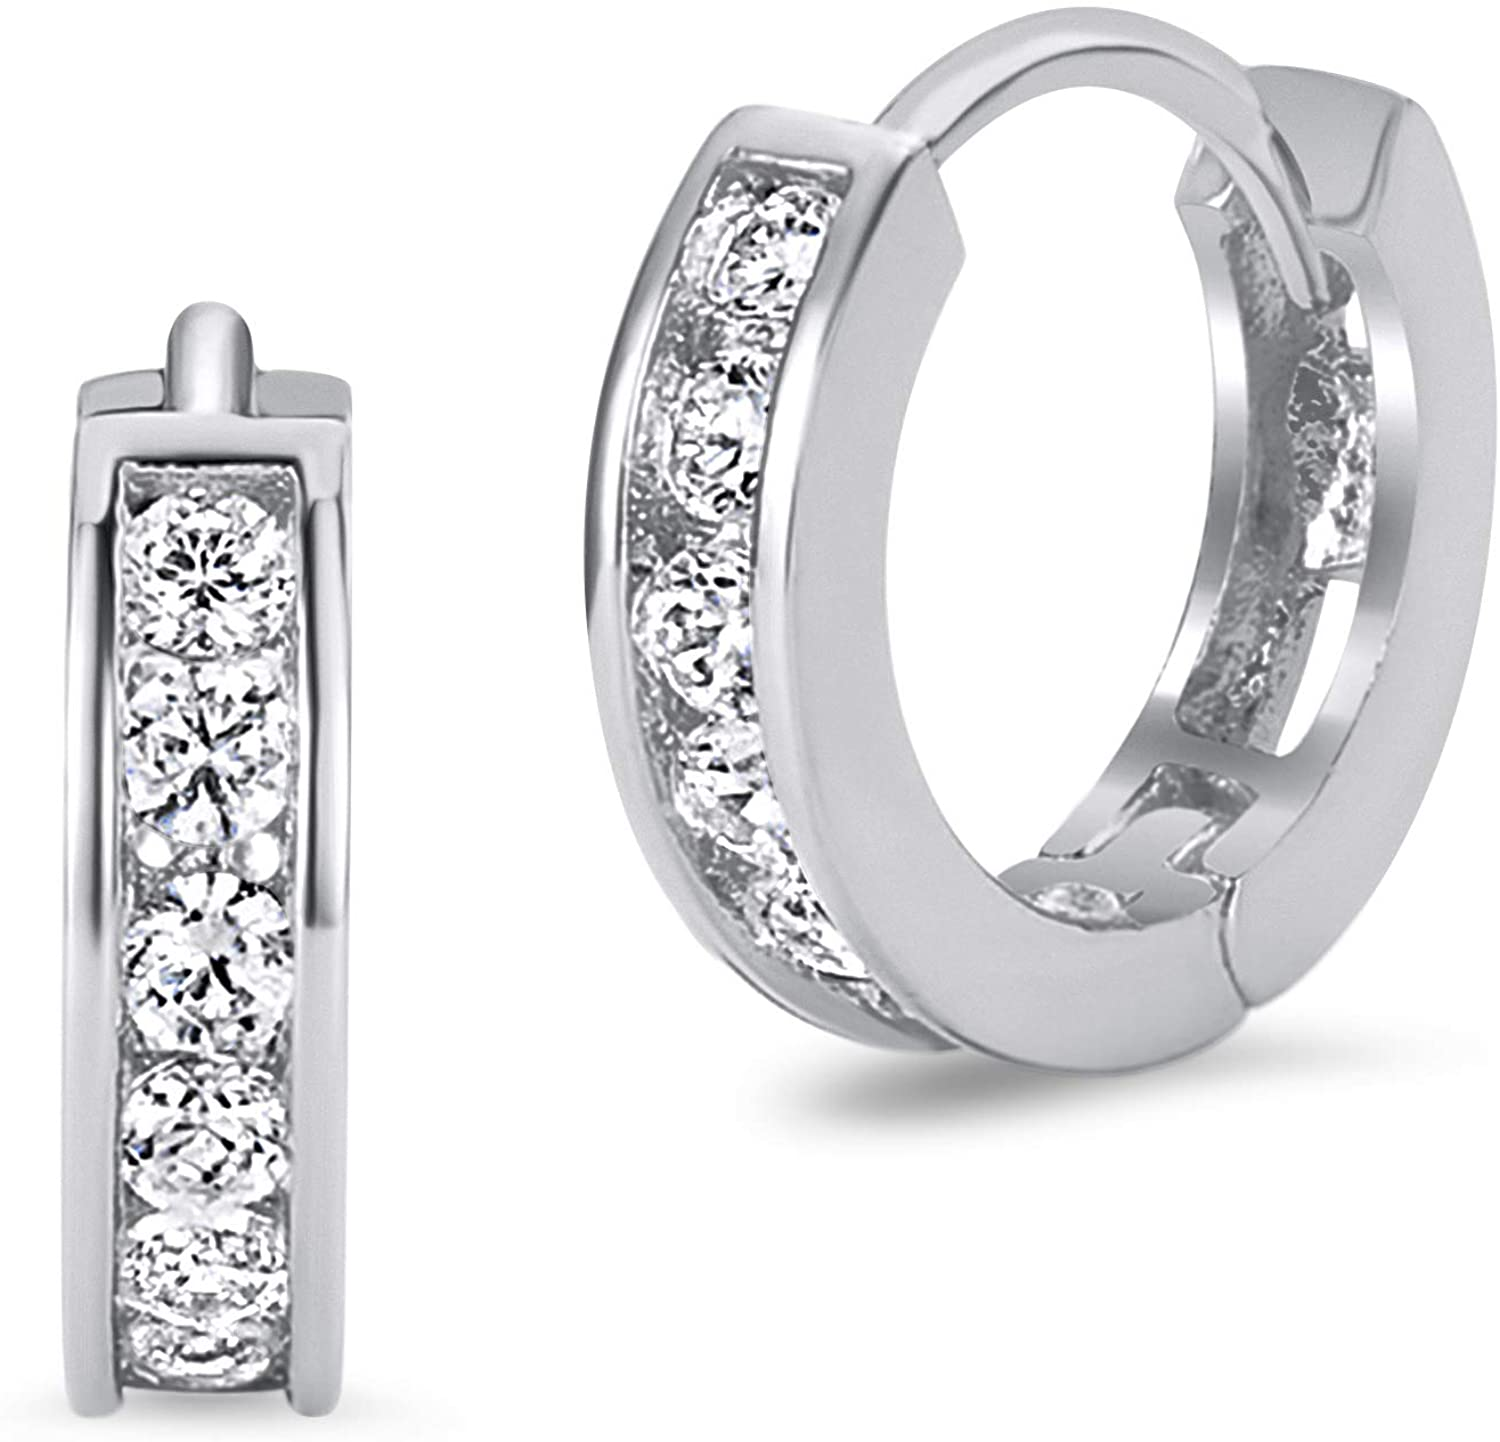 925 Sterling Silver Rhodium Plated 3mm x 13mm Cubic Zirconia Channel Huggie Baby Girls Earrings